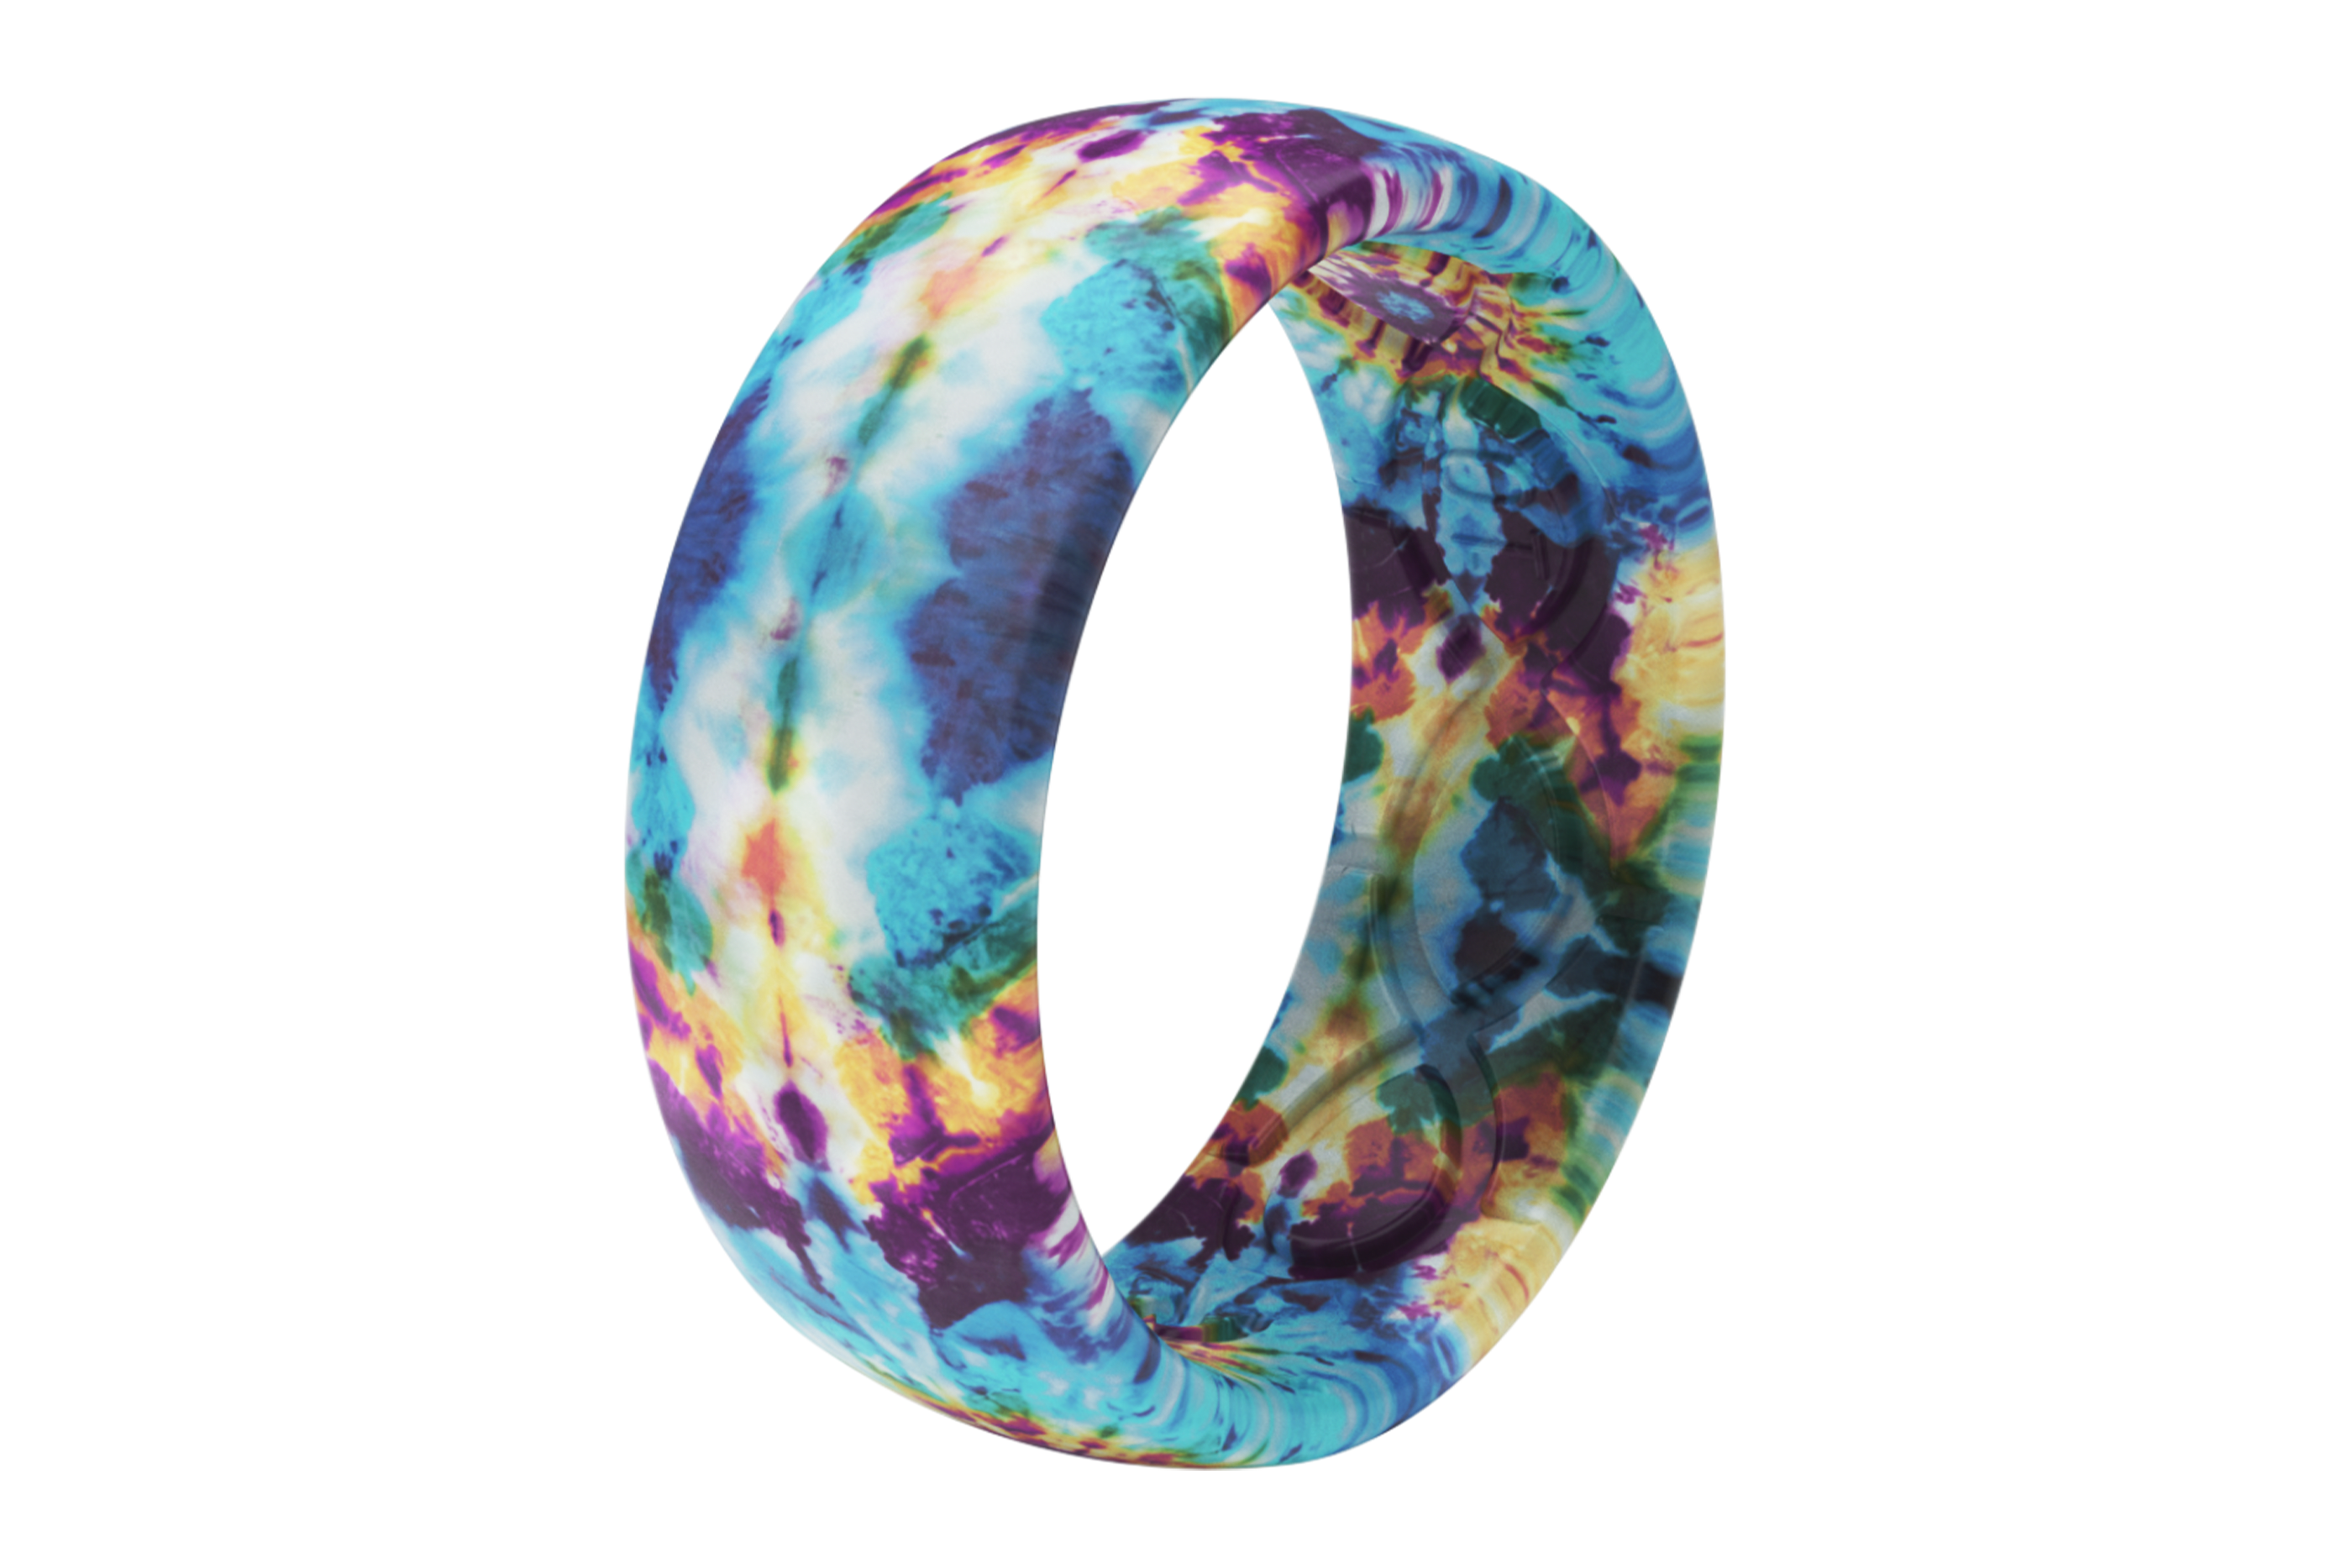 Groove Life Wild Thing Tie-Dye  viewed on its side  viewed on its side